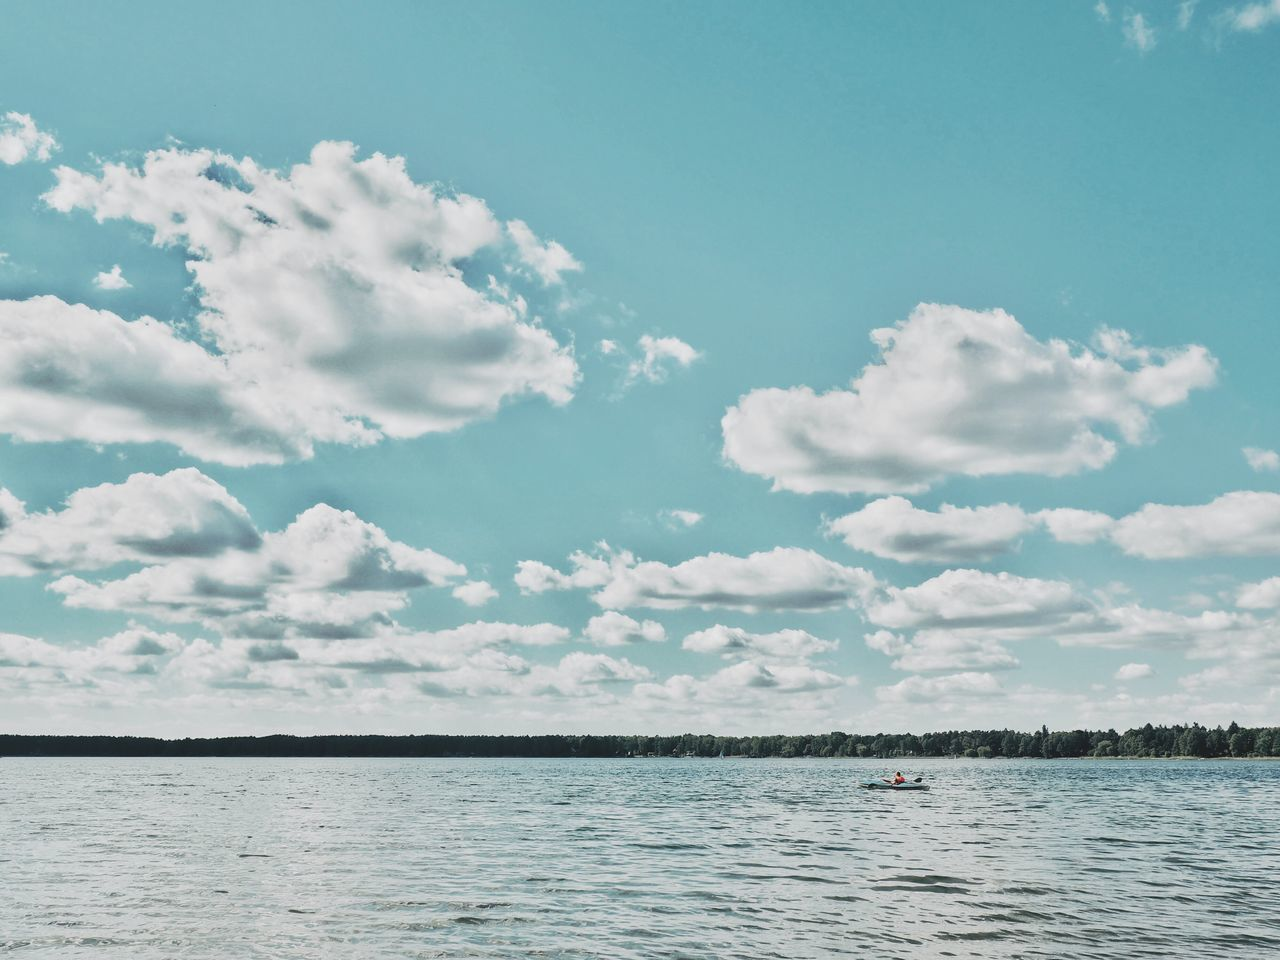 Kanu See Wandlitz Wandlitzsee Brandenburg One Man Only Alone On The Water Lake Canoe Canoeing One Person Beauty In Nature Sky Beach Scenics Day Tranquility Nature Cloud - Sky Outdoors Alone In Nature Water Nature_collection Dramatic Sky